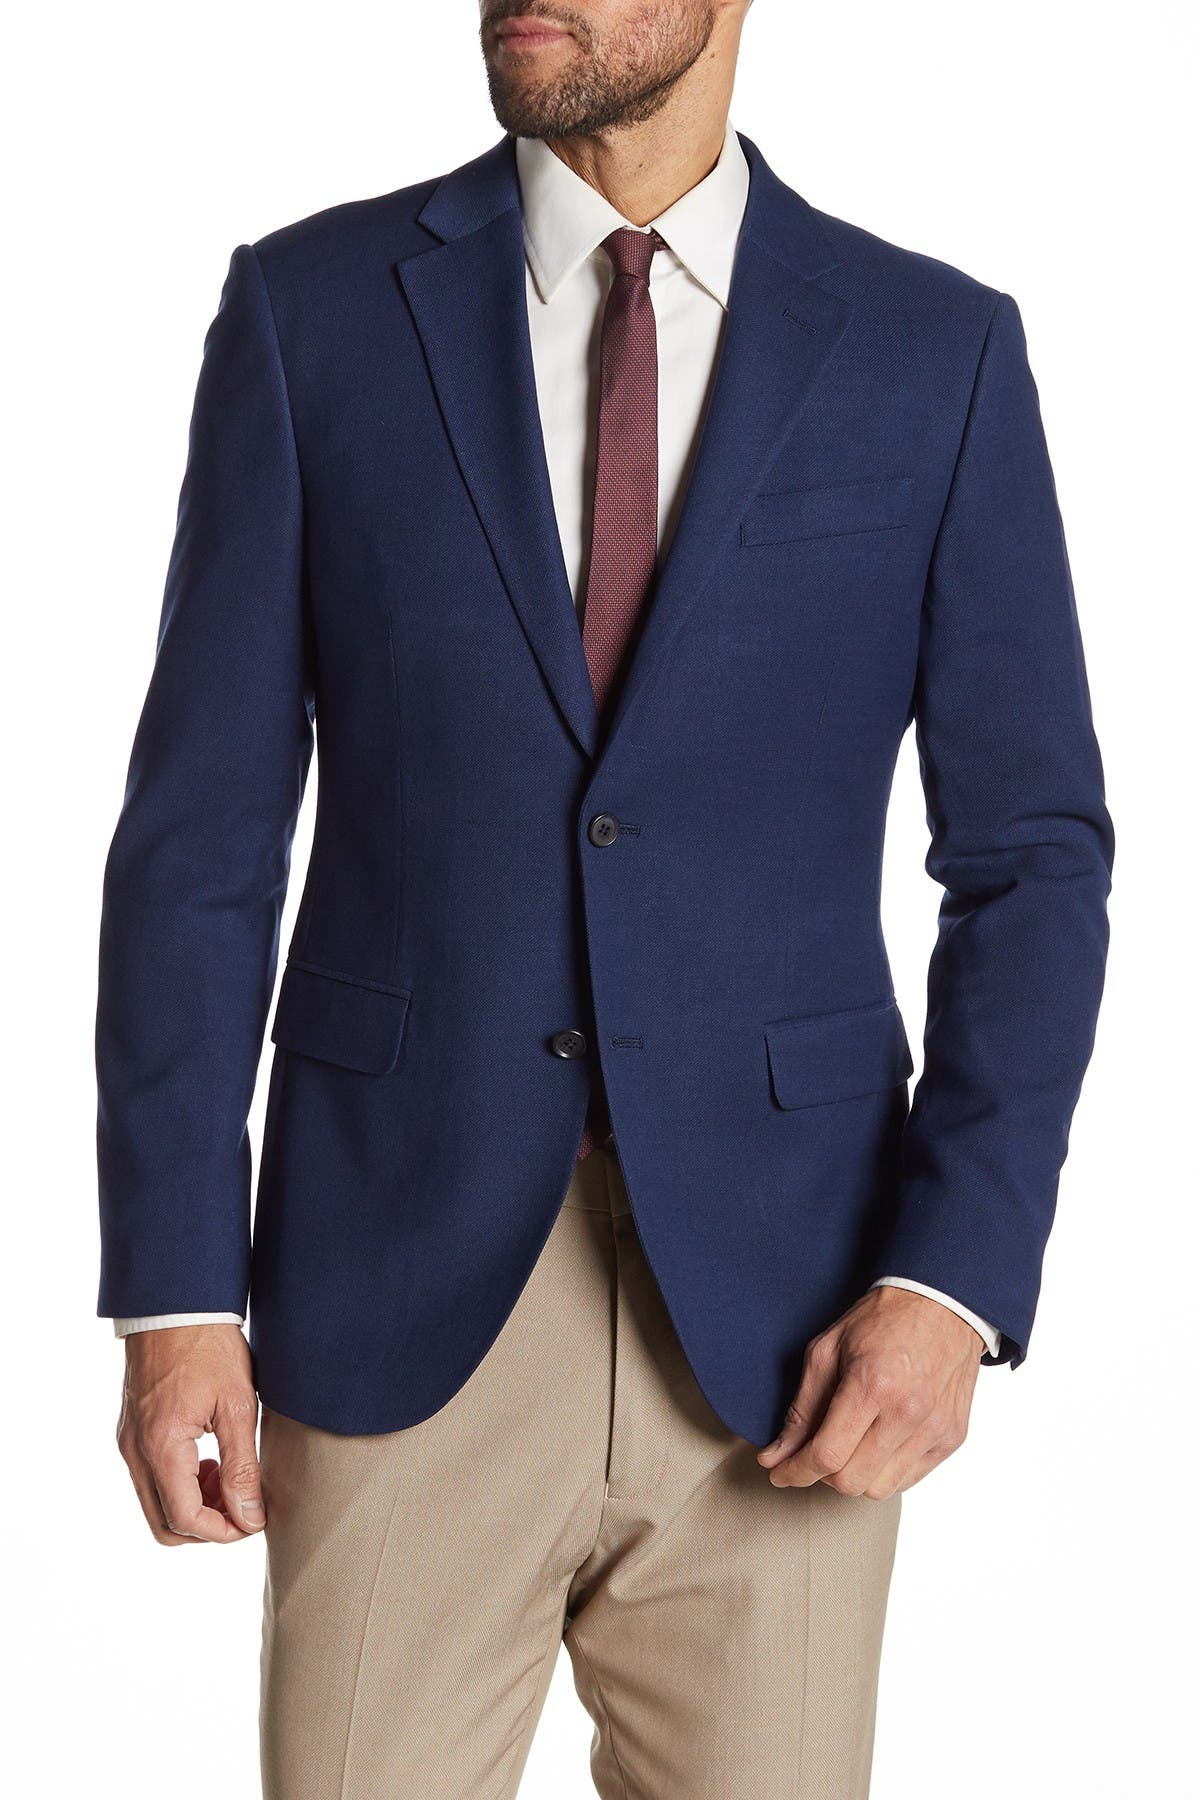 Image of Nordstrom Rack Woven Two Button Notch Lapel Sport Coat